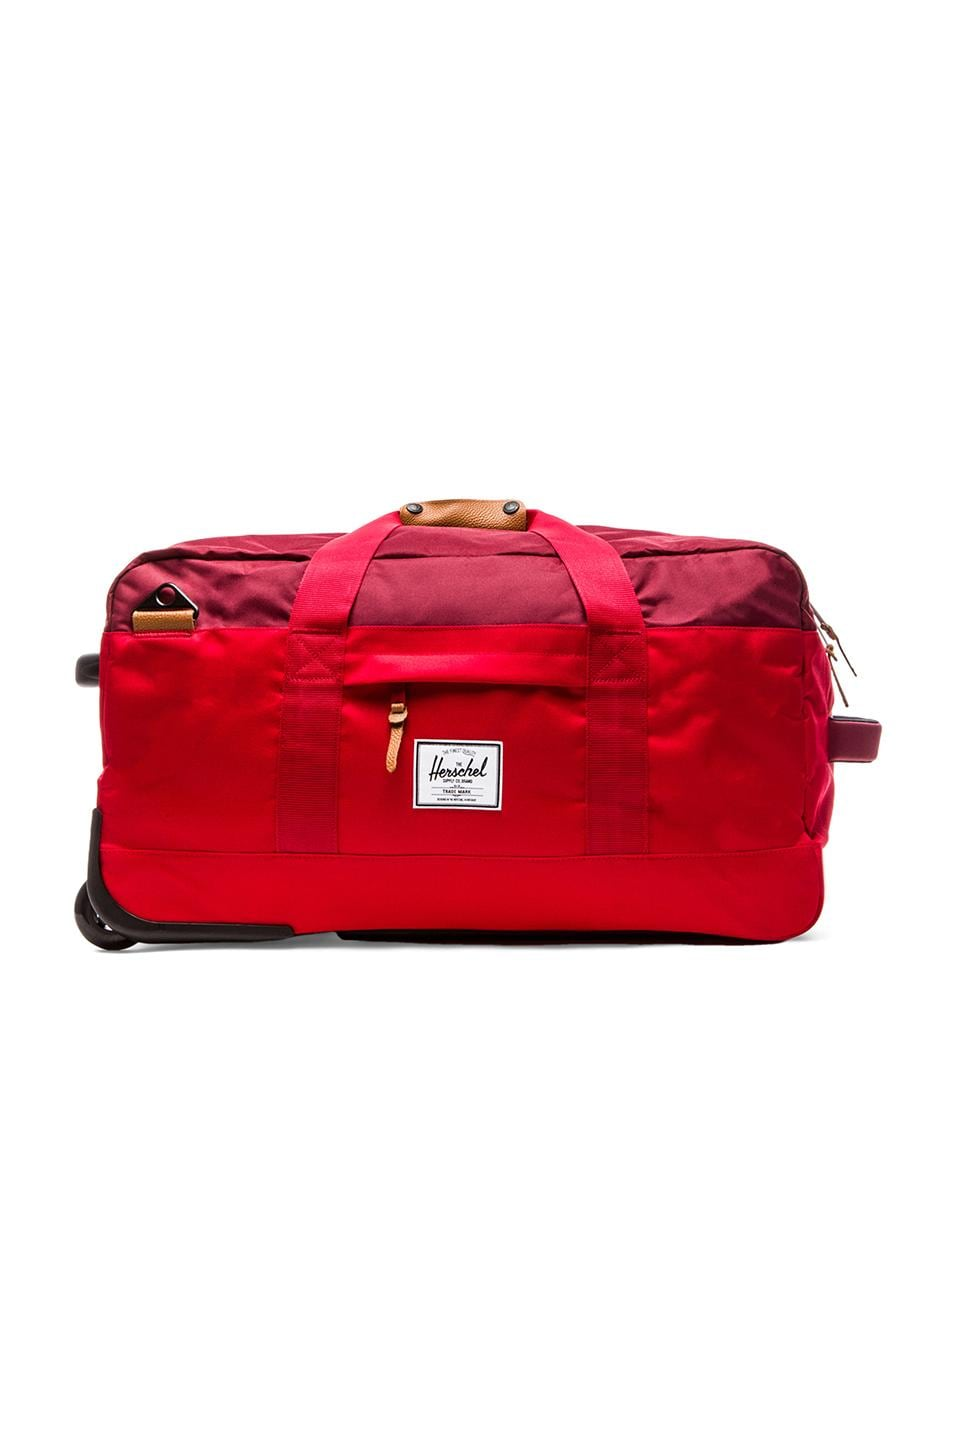 Herschel Supply Co. Wheelie Outfitter Duffle in Red & Burgundy & Rust